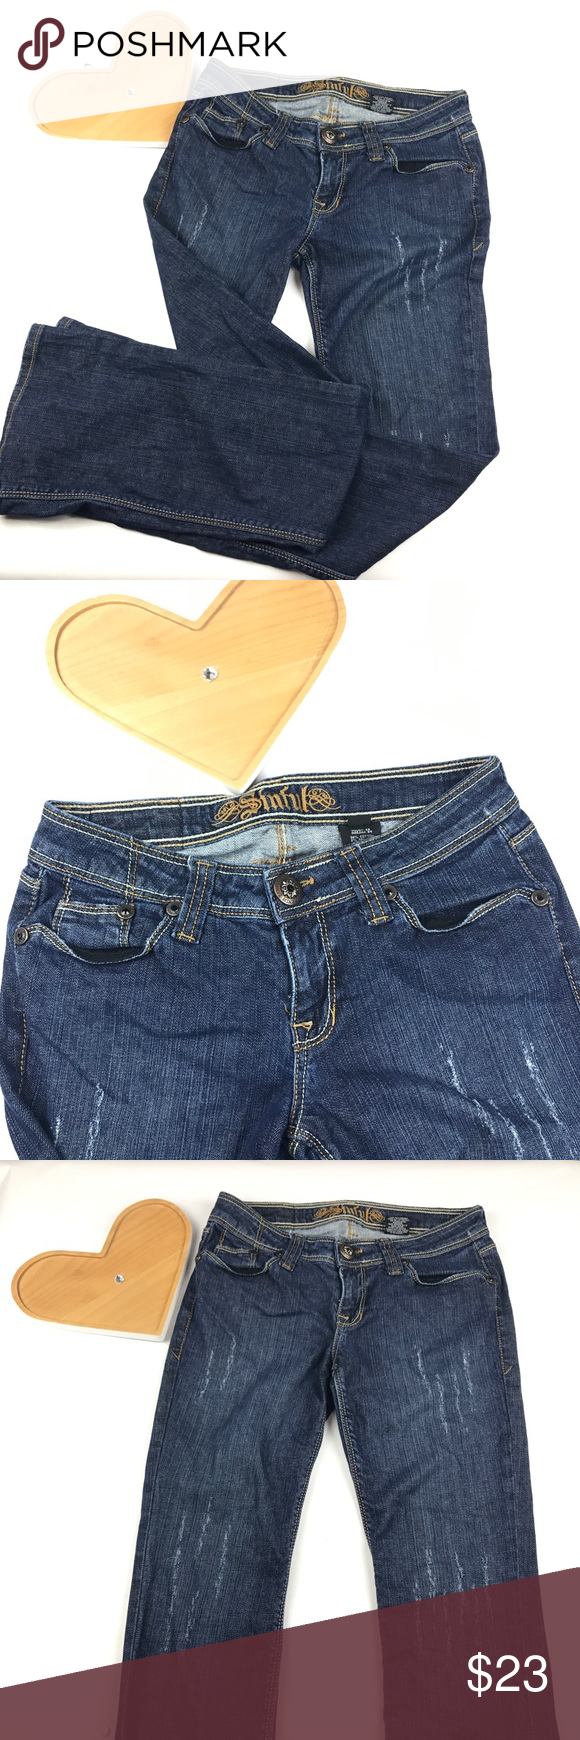 Sinful by affection distressed jeans Cute pair of jeans nice detail pockets size 28 Affliction Jeans Boot Cut